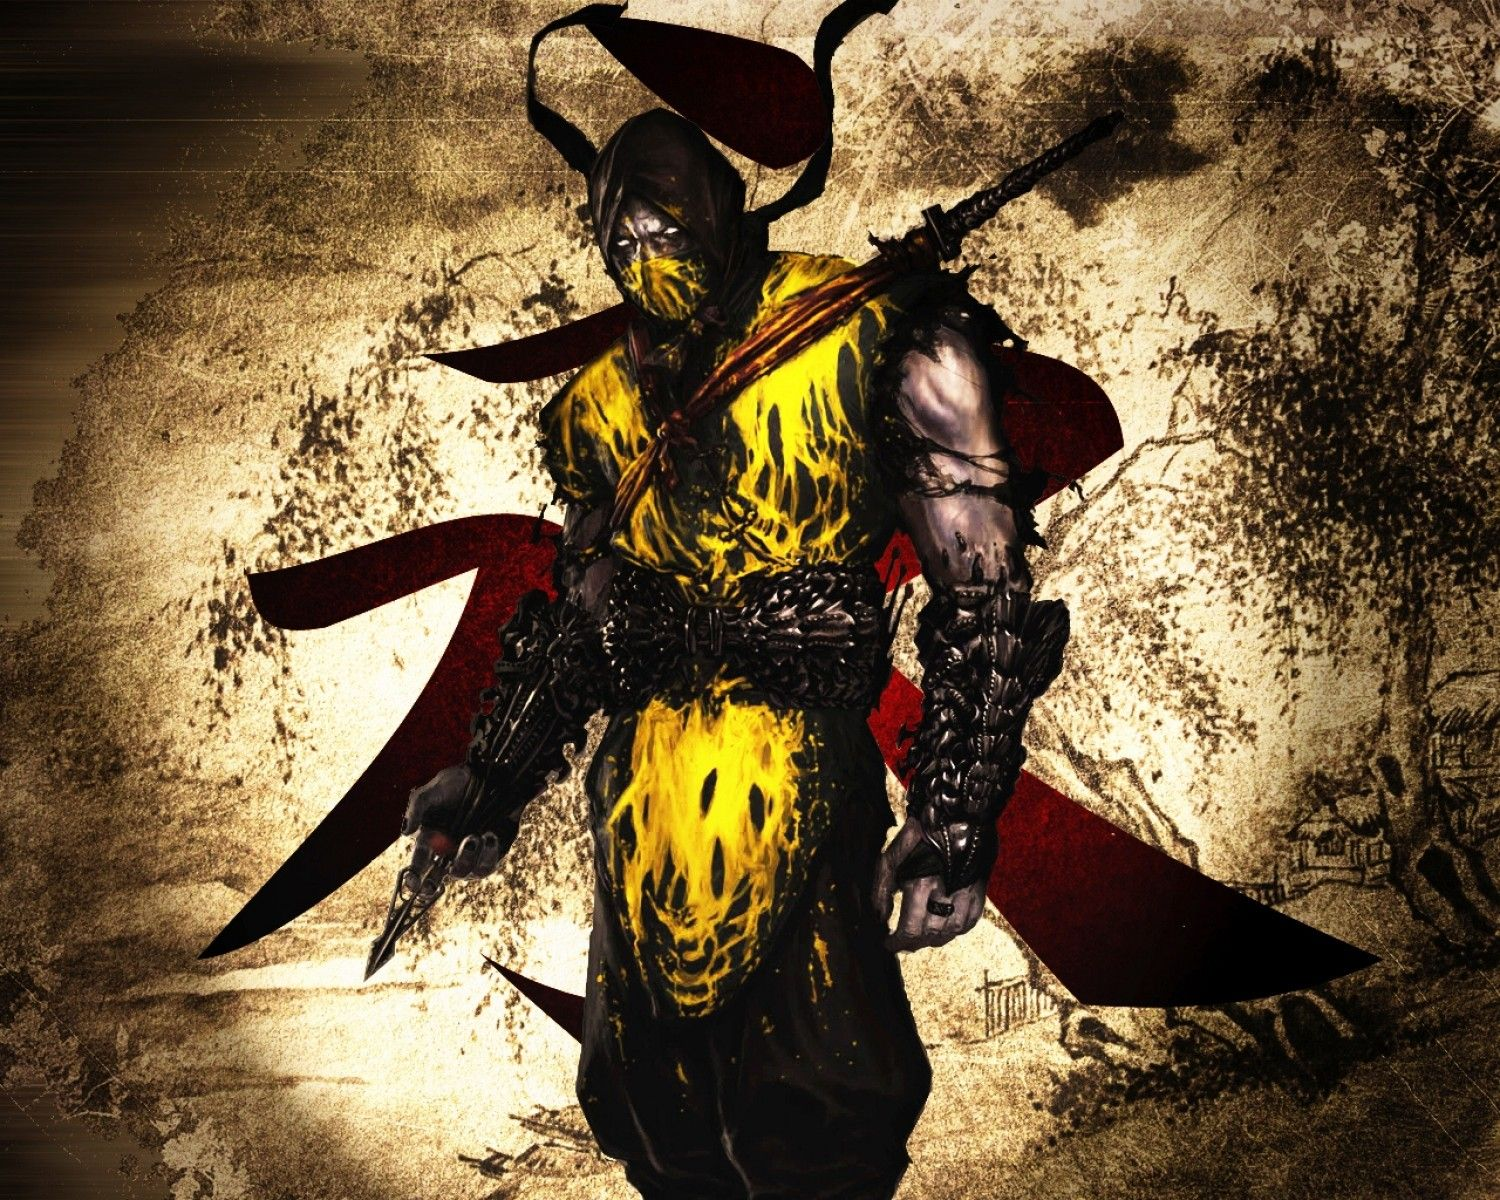 Mortal Kombat Scorpion Hd 1500x1200 iWallHD Wallpaper